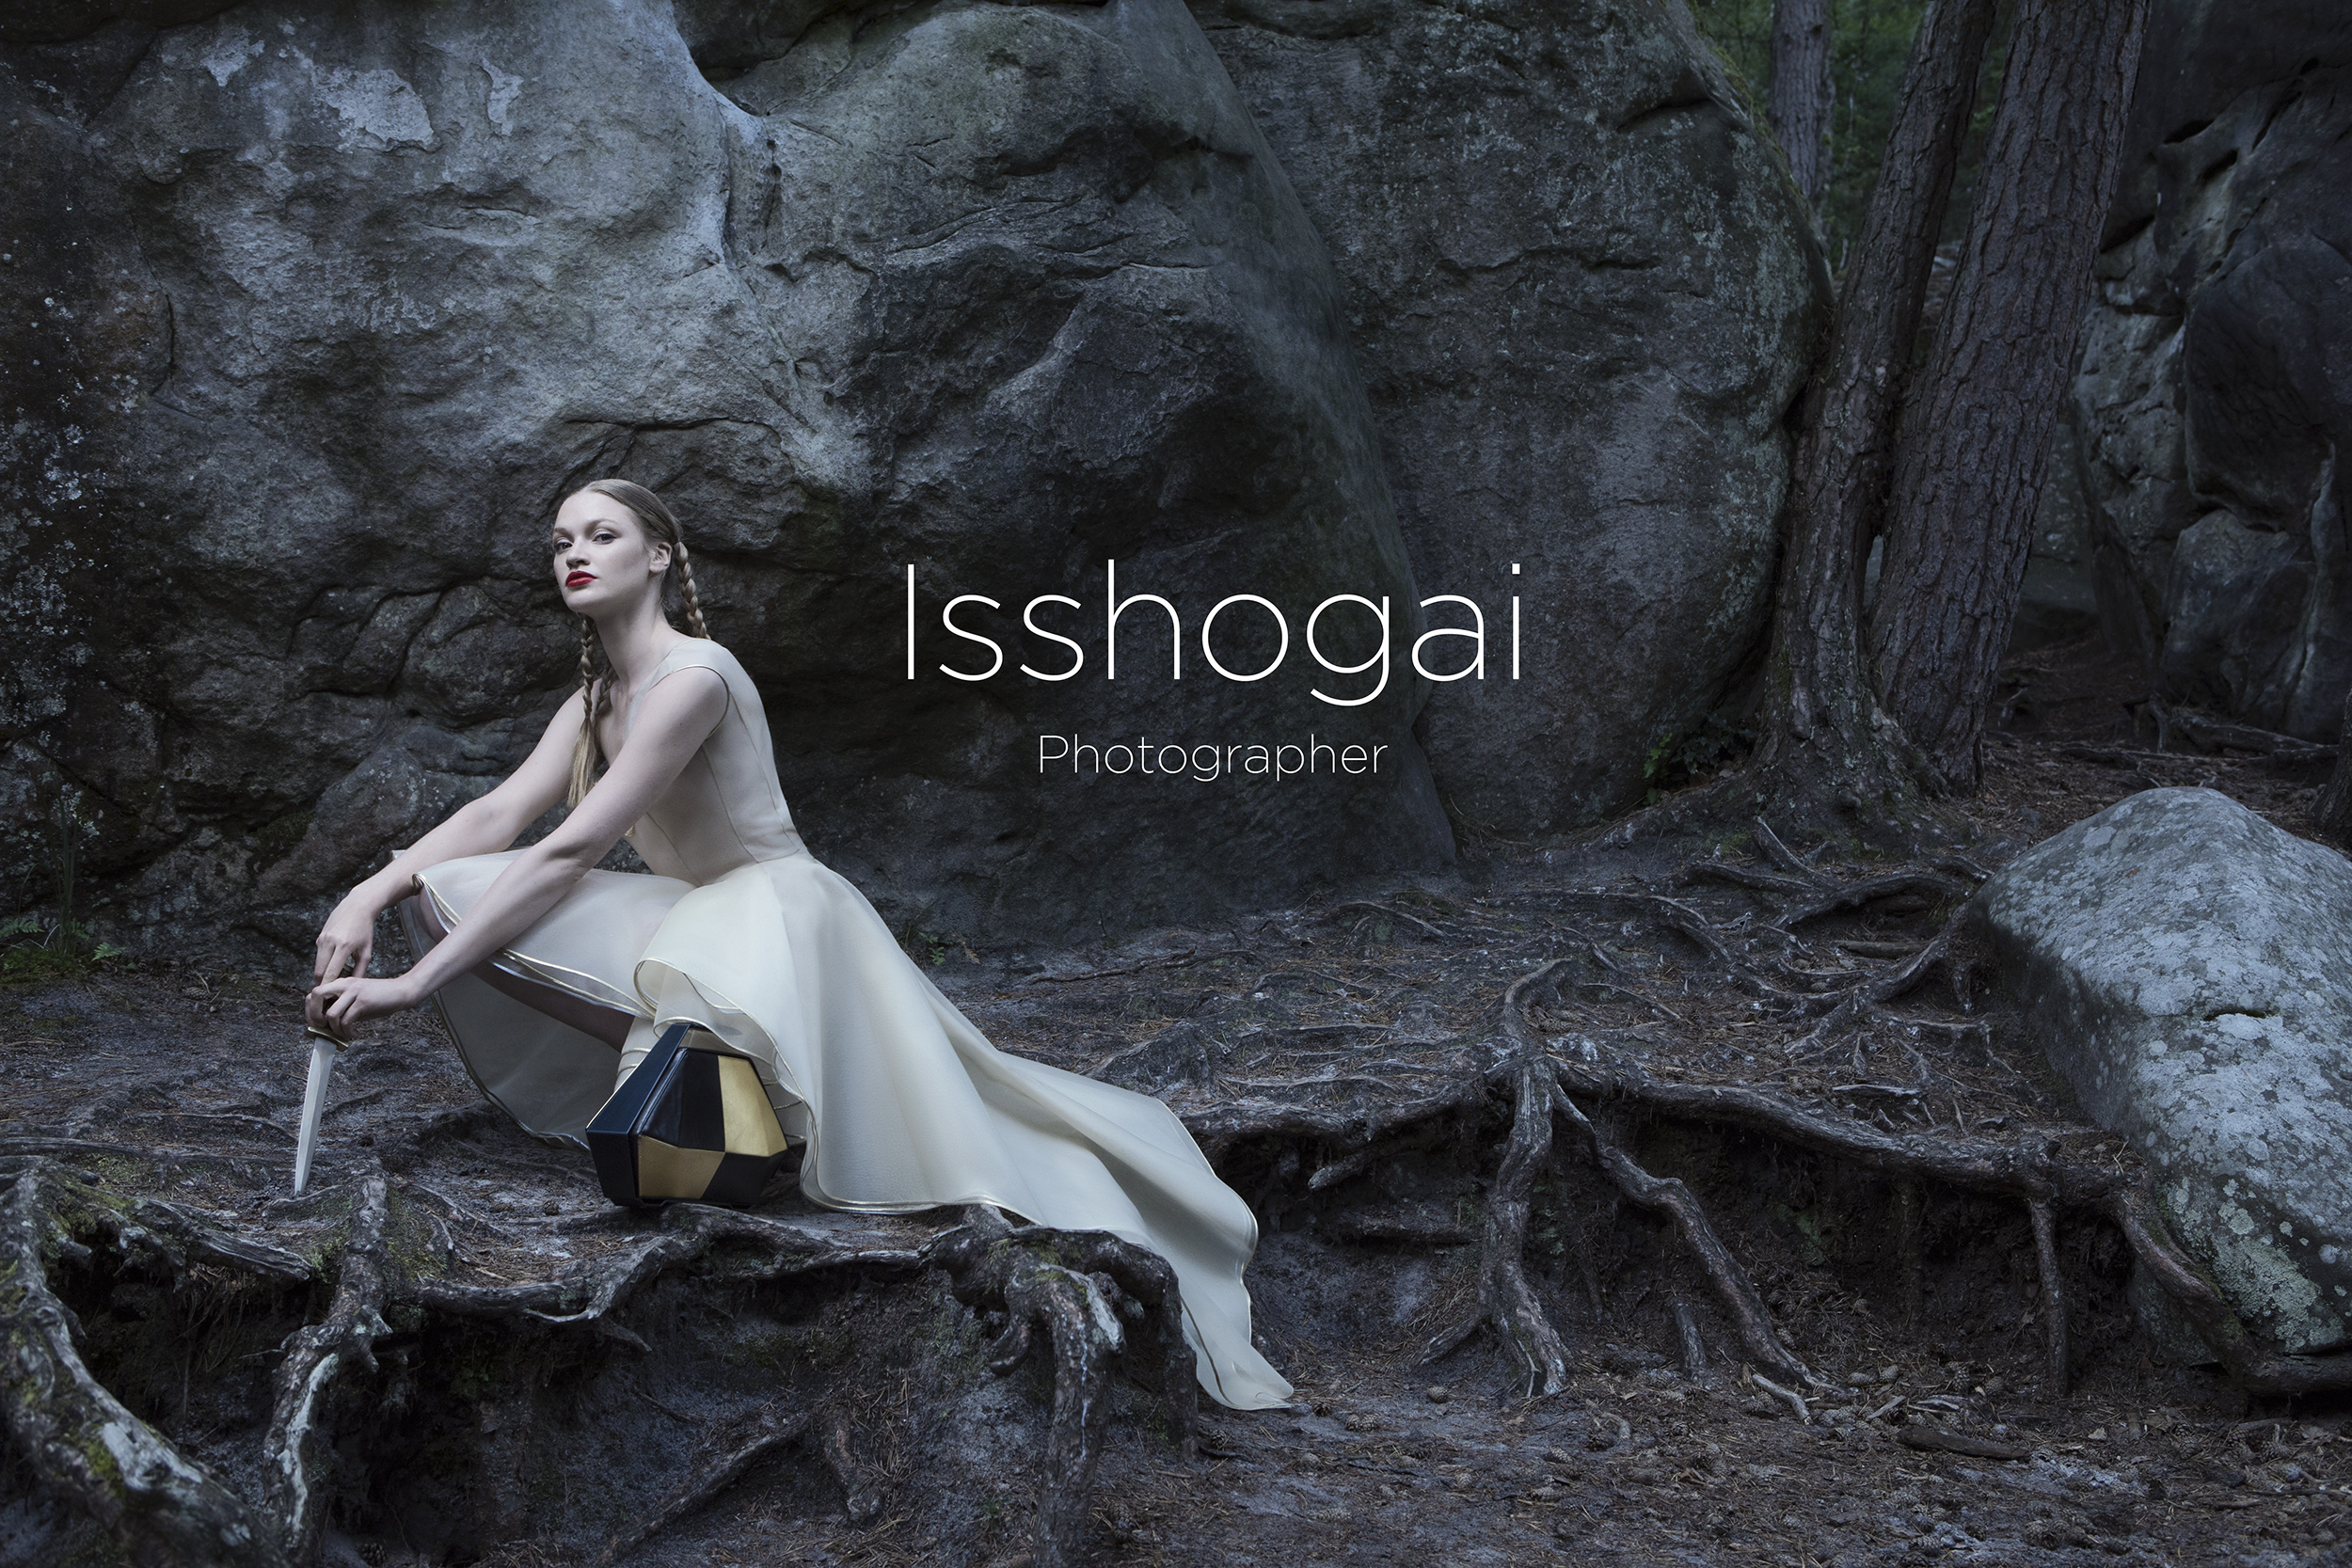 We're very excited to introduce the rich, cinematic style of Paris based photographer  ISSHOGAI . From Parisian luxury hotels to Jamaican slums, Issho has been developing his own style for several years, mixing an expressionism Burtonian light with a hands-on approach inspired by impressionists like Monet and Johan Barthold Jongkind.